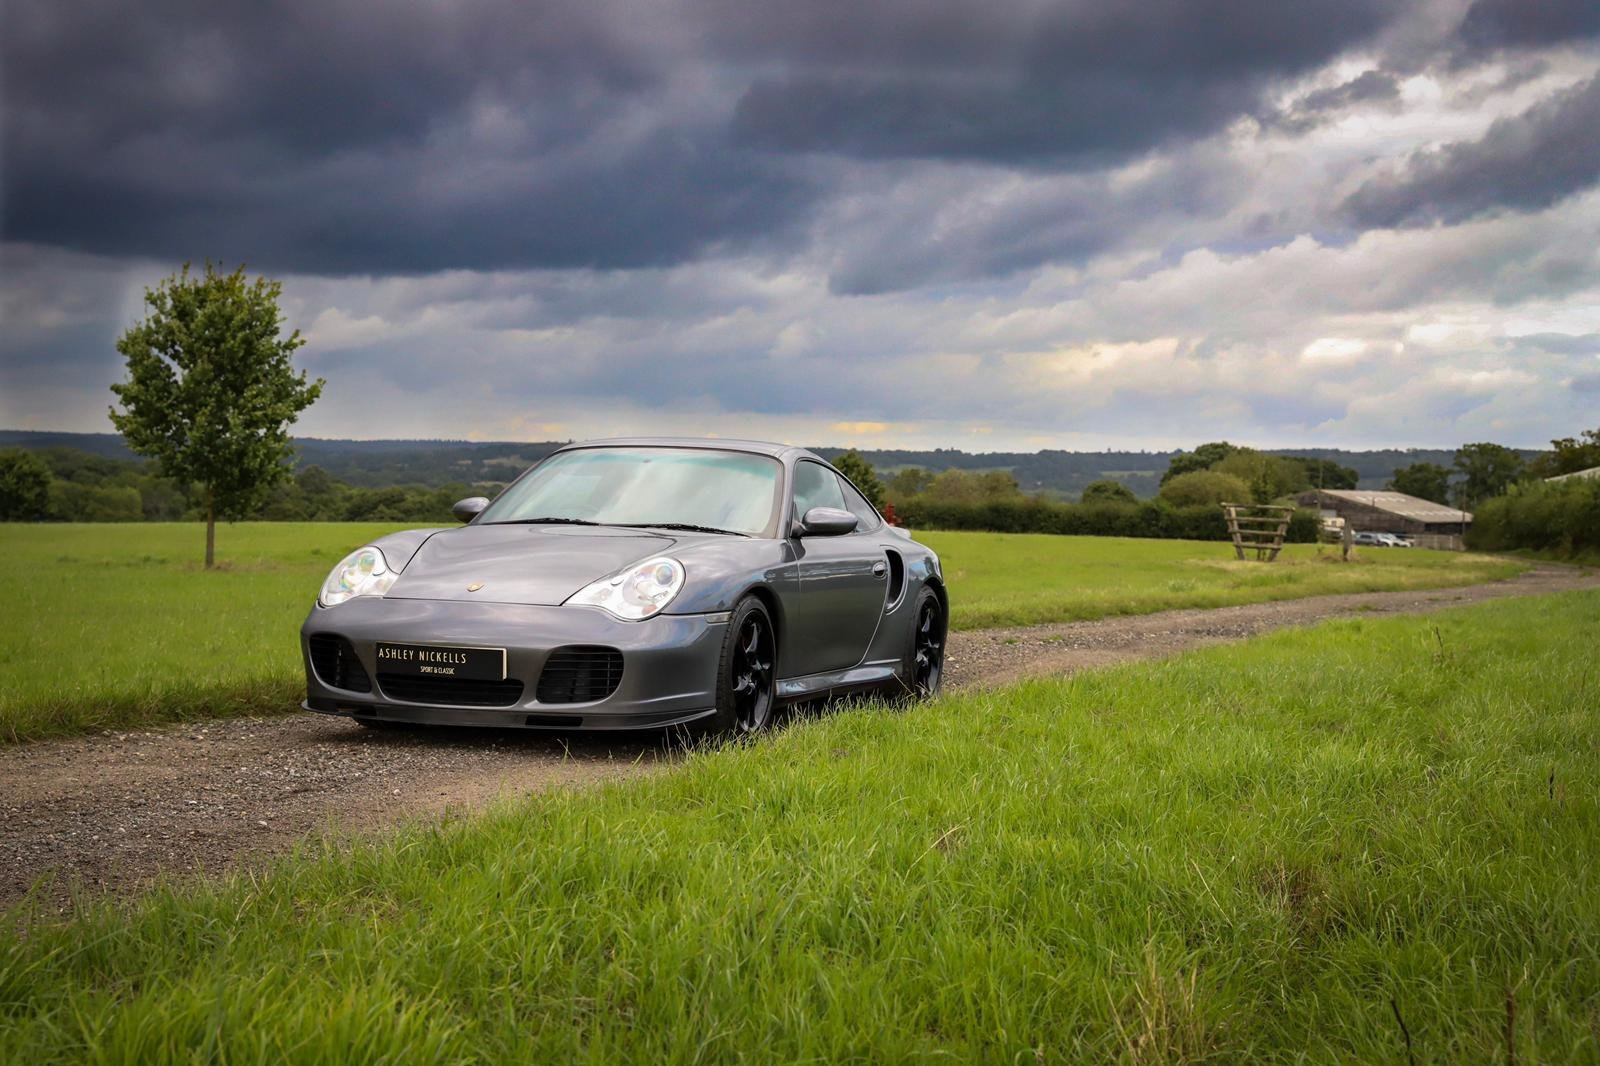 2000 PORSCHE 996 TURBO - MANUAL COUPE - 20 SERVICE STAMPS For Sale (picture 4 of 6)